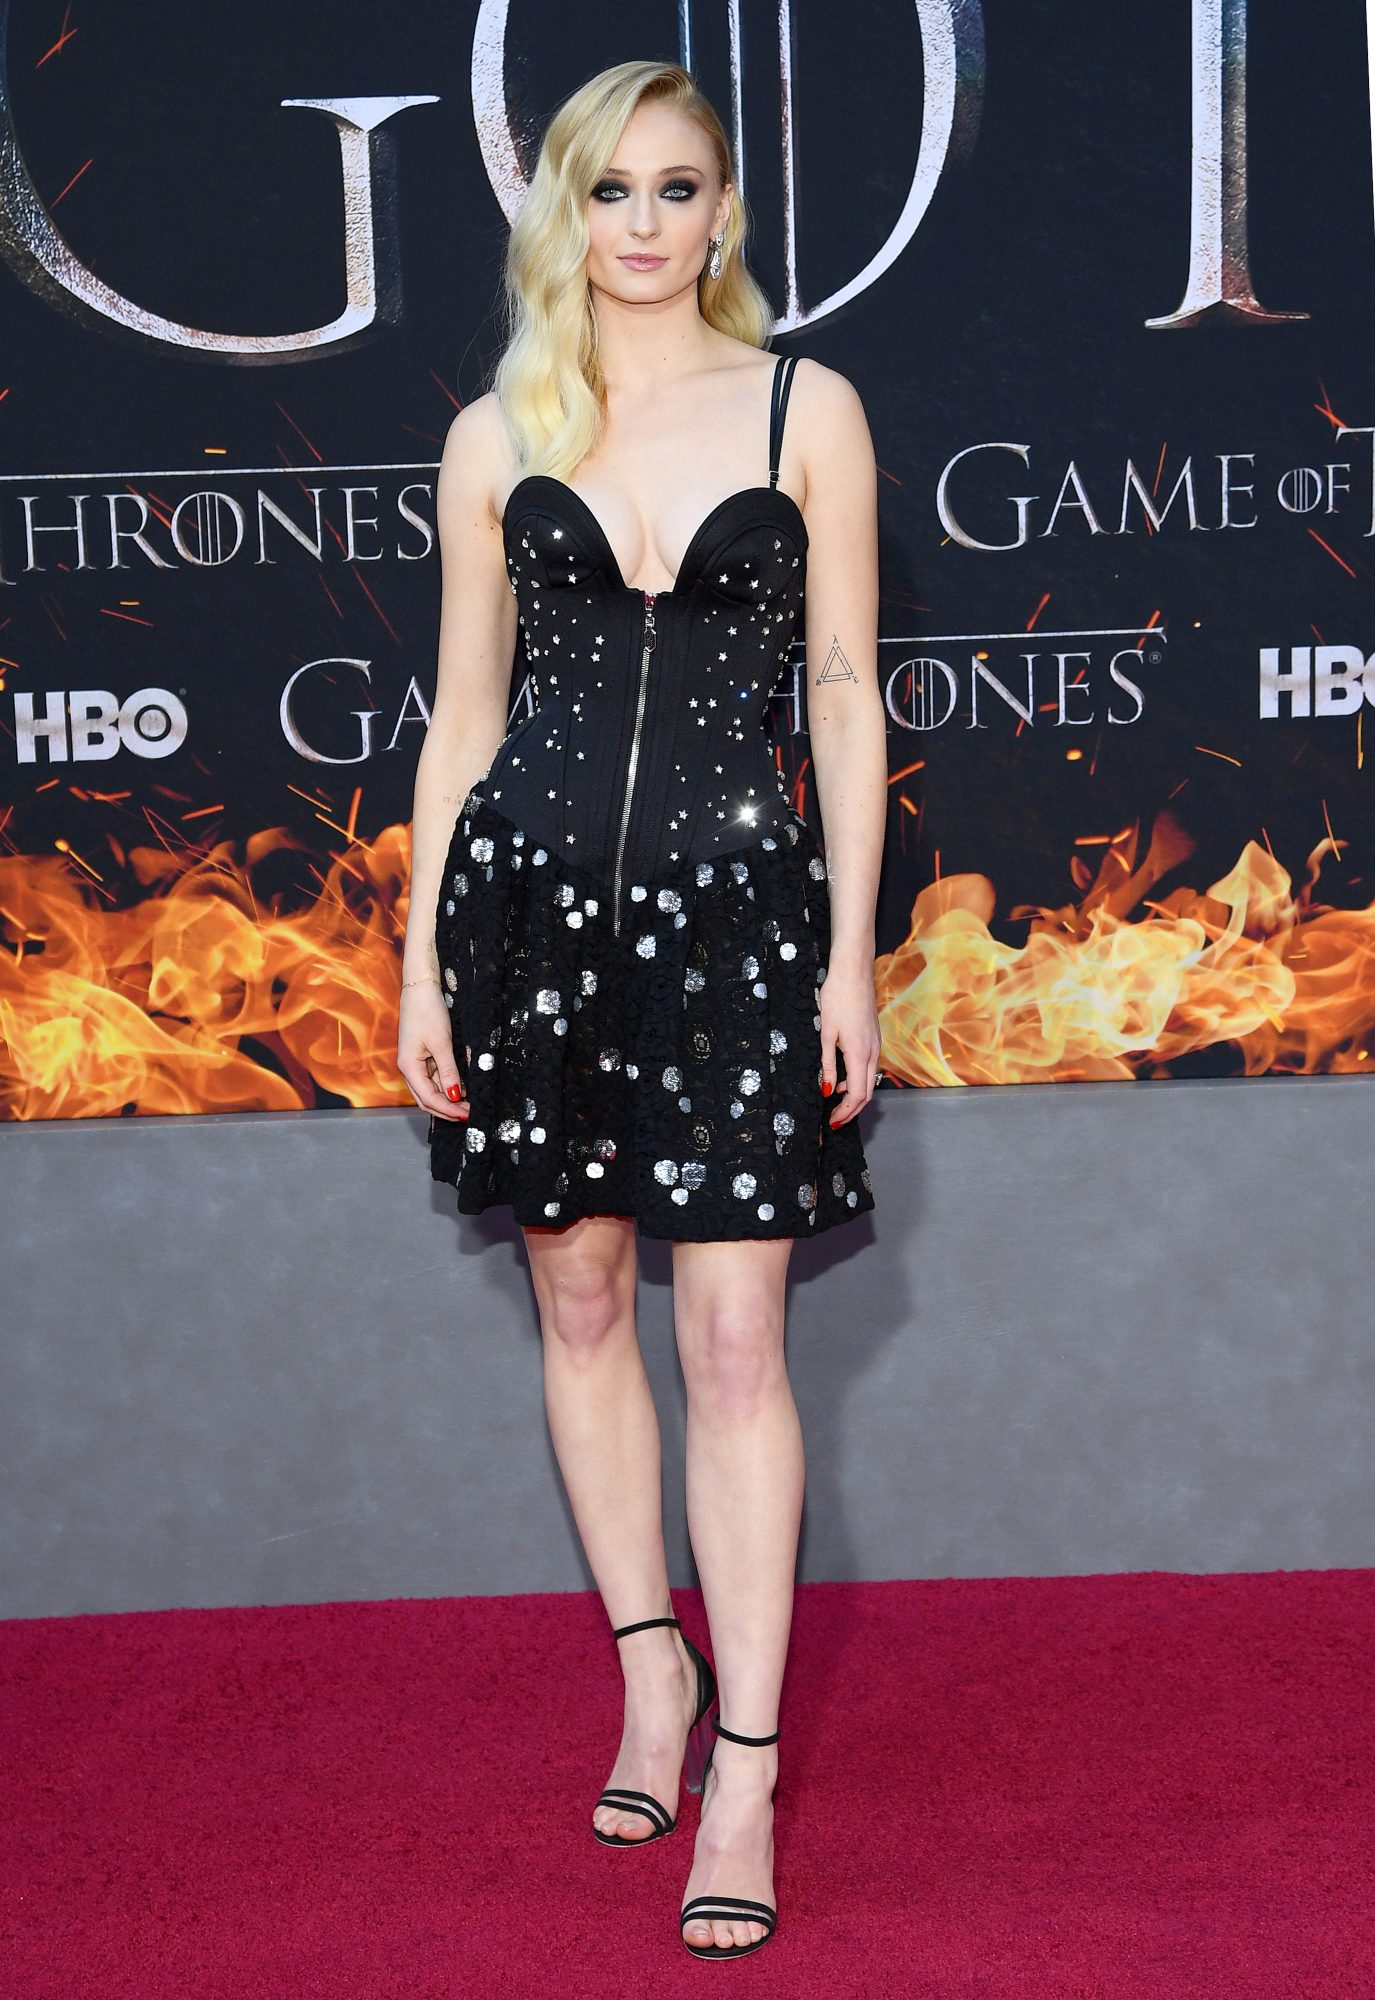 """NEW YORK, NEW YORK - APRIL 03: Sophie Turner attends the """"Game Of Thrones"""" Season 8 Premiere on April 03, 2019 in New York City. (Photo by Dimitrios Kambouris/Getty Images)"""